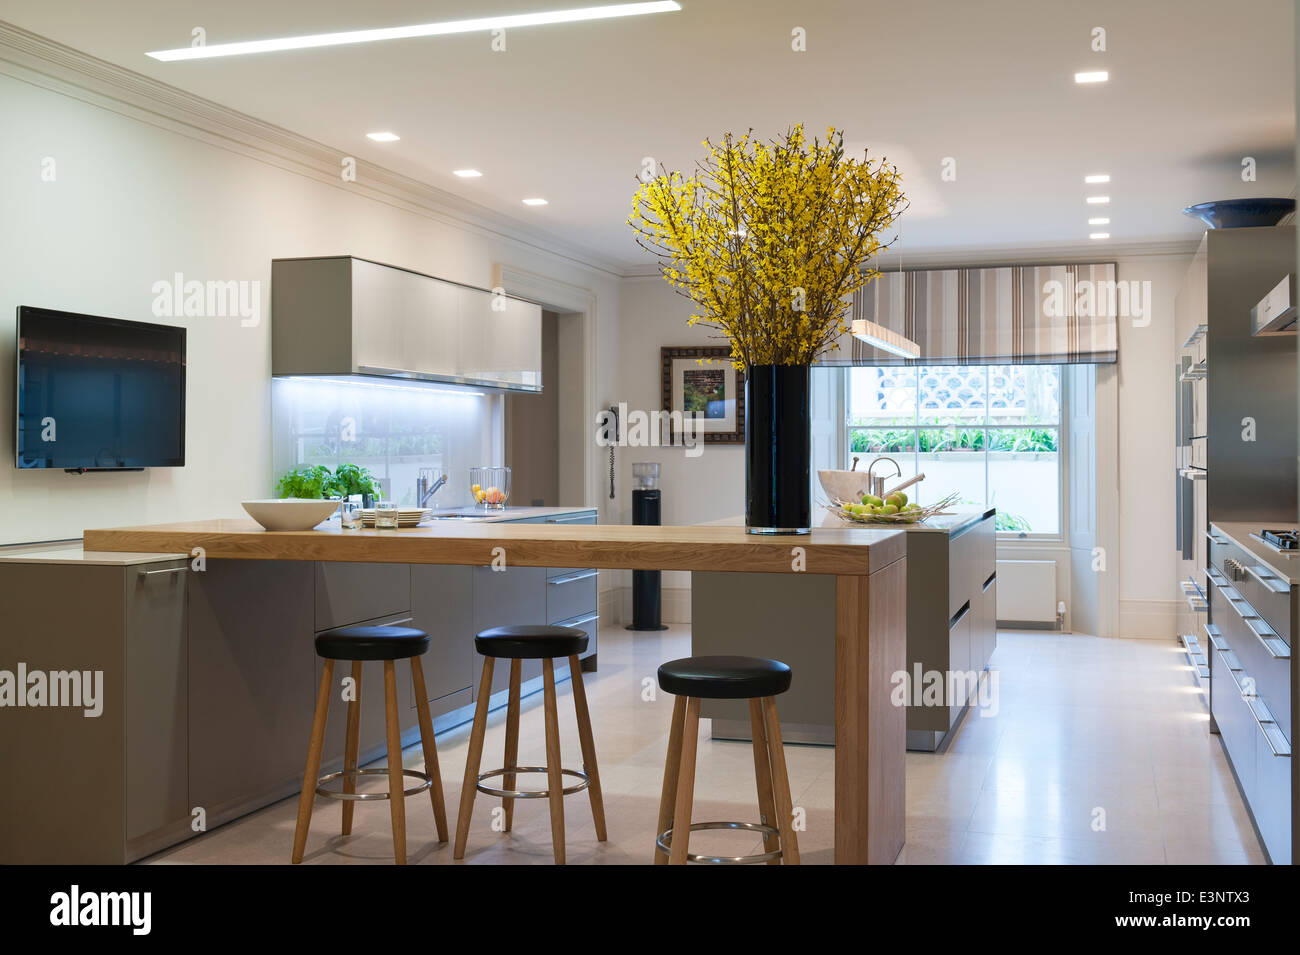 Modern Breakfast Bar modern bulthaup kitchen with breakfast bar and stools stock photo